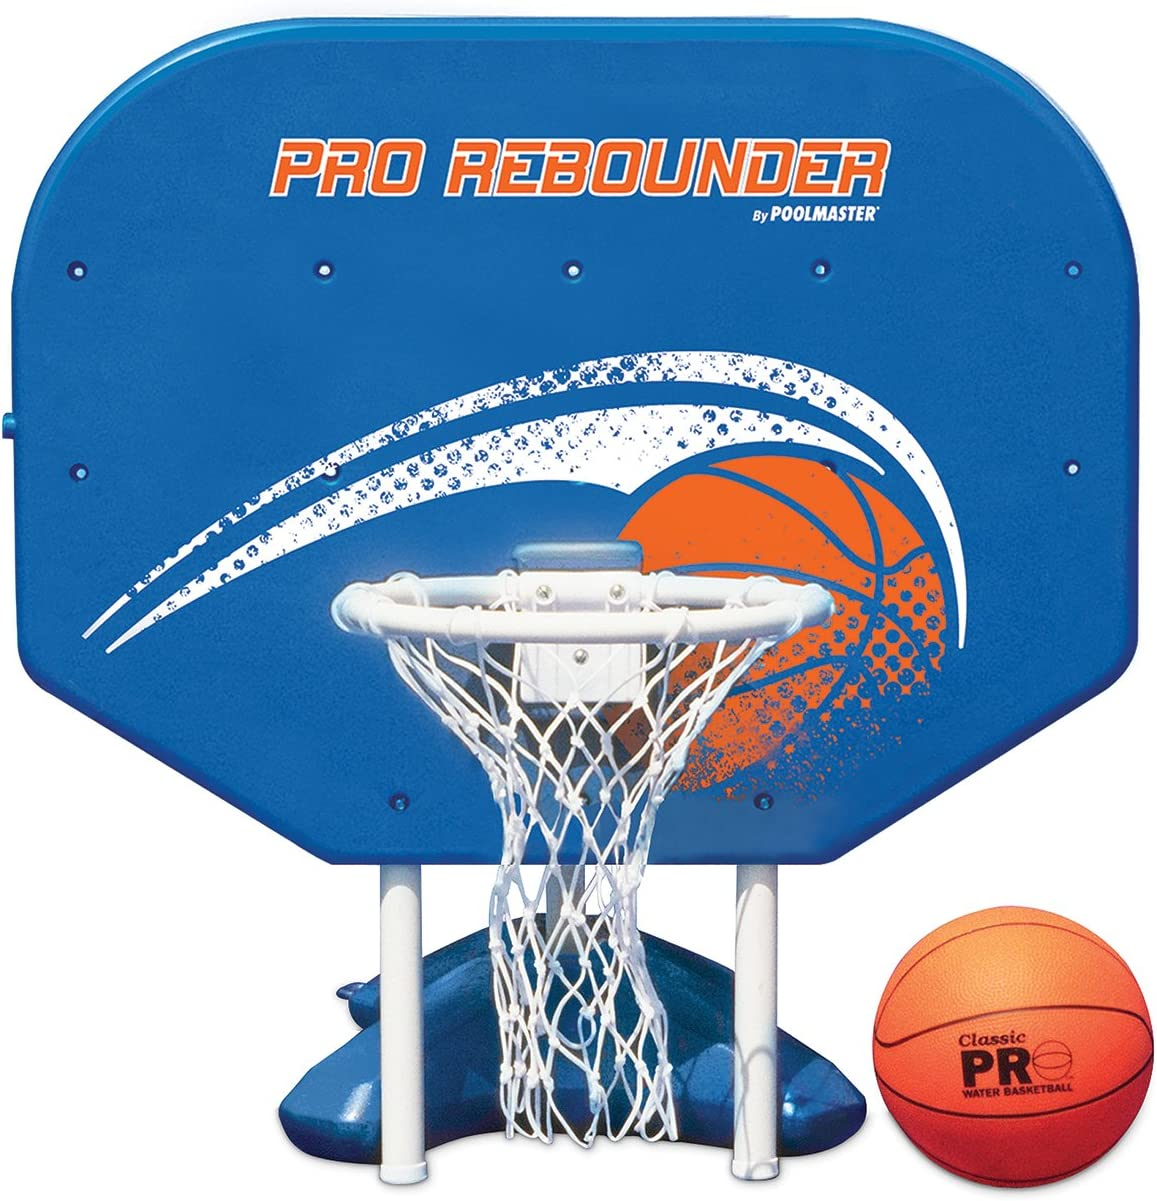 The 7 best pool basketball hoops set in 2020 (Buying Guide) 4